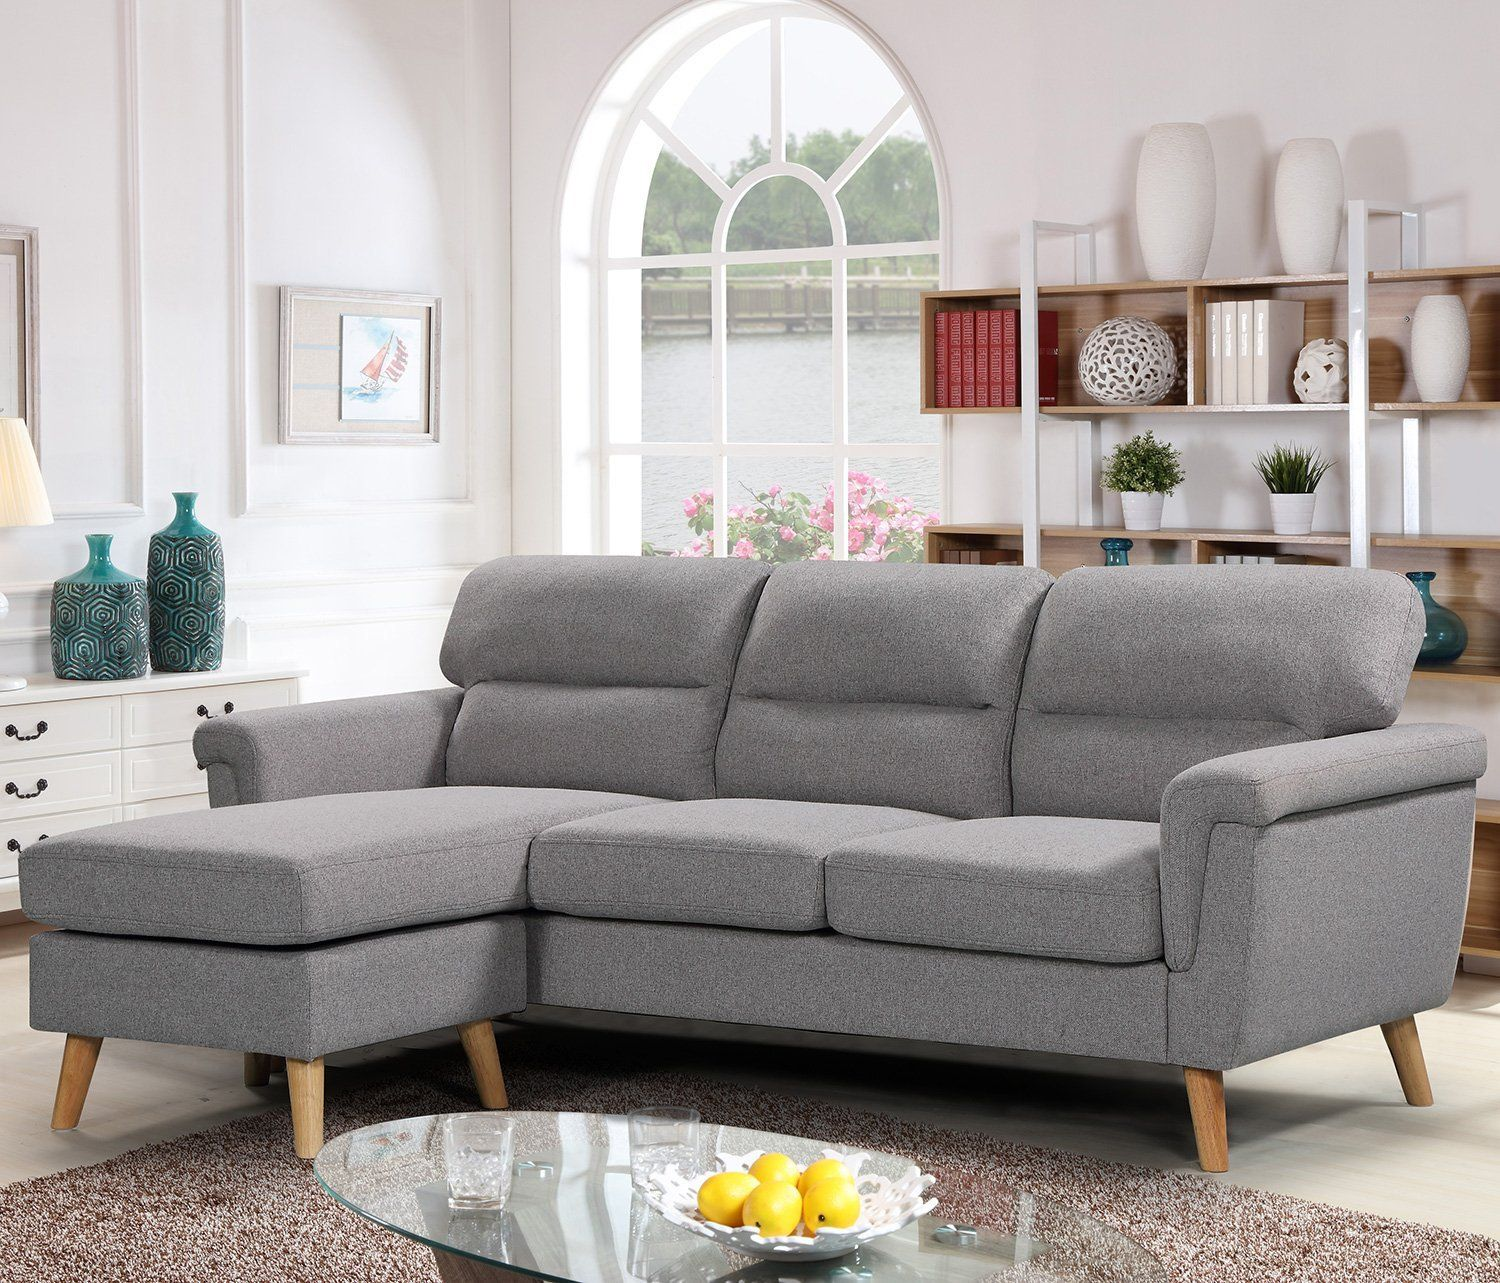 16 Super Cheap Sectional Sofa Sets You Can Buy Online L Shaped Couch Fabric Sectional Sofas Furniture Sofa Set